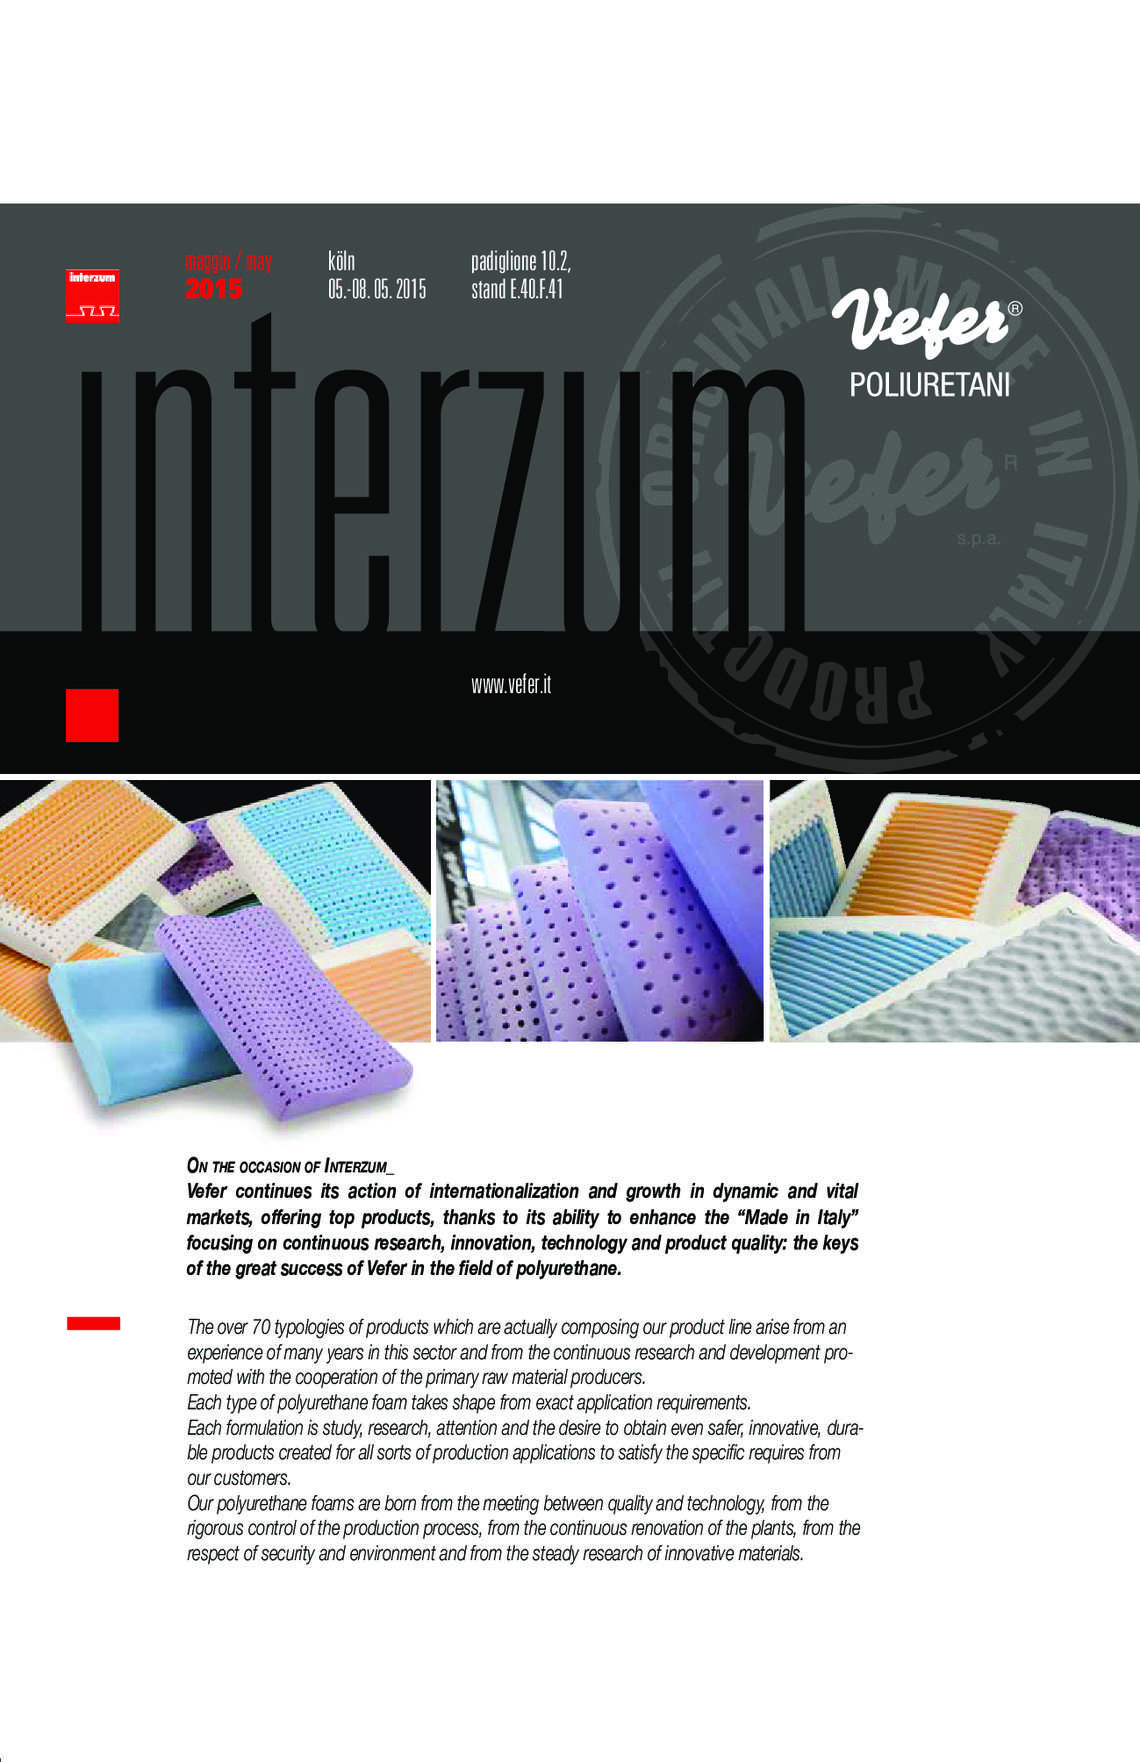 interzum-2015_journal_0_039.jpg